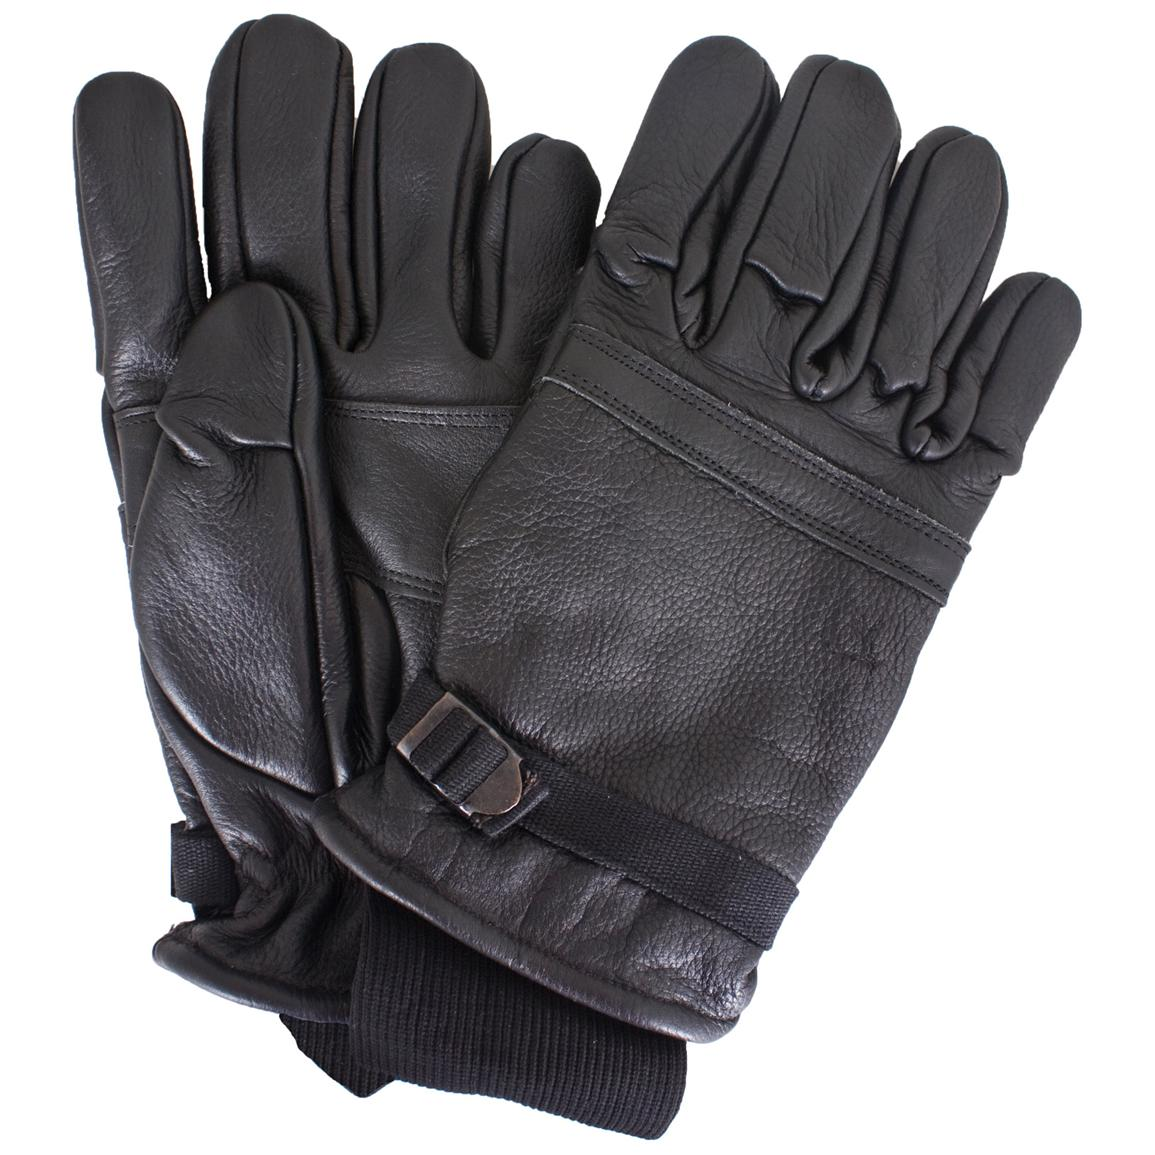 Fox Tactical™ D3A Generation IV Insulated Gloves